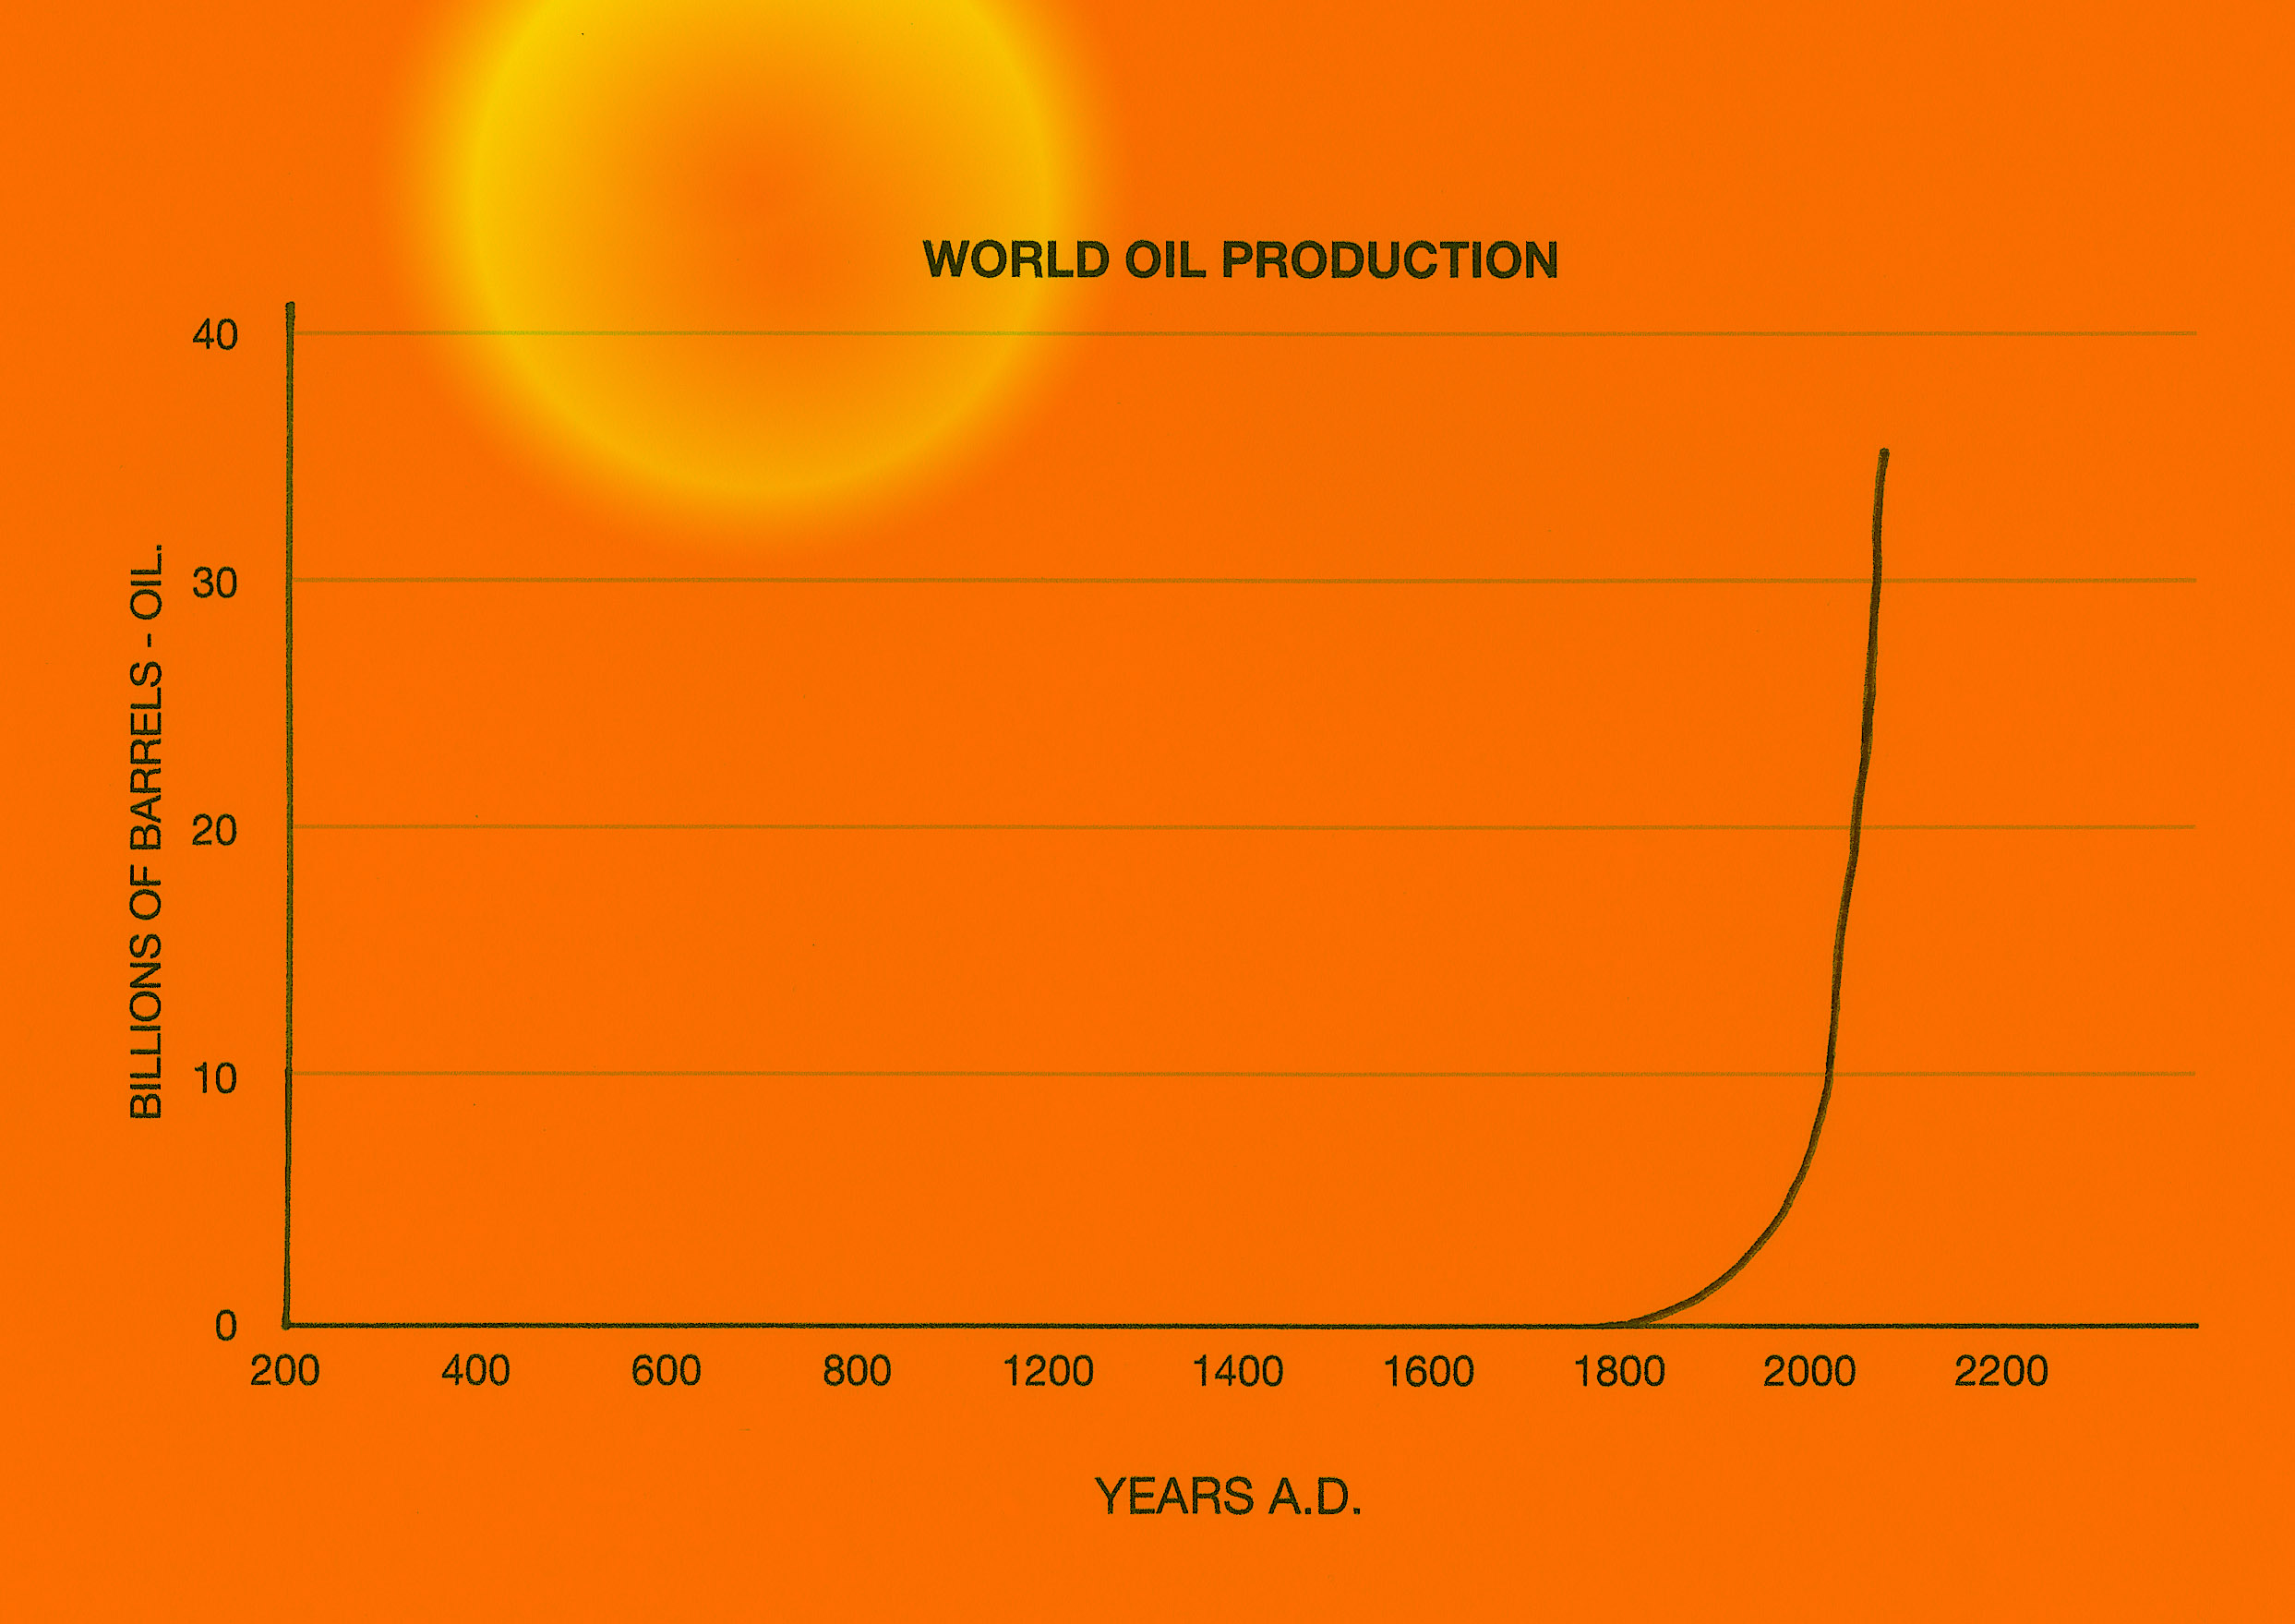 This graph shows the level of oil extraction (fossil fuel) and as would be expected it follows the same line of exponential growth for the human population. Coal extraction starts a fraction earlier on the time line, but follows the same exponential growth line.